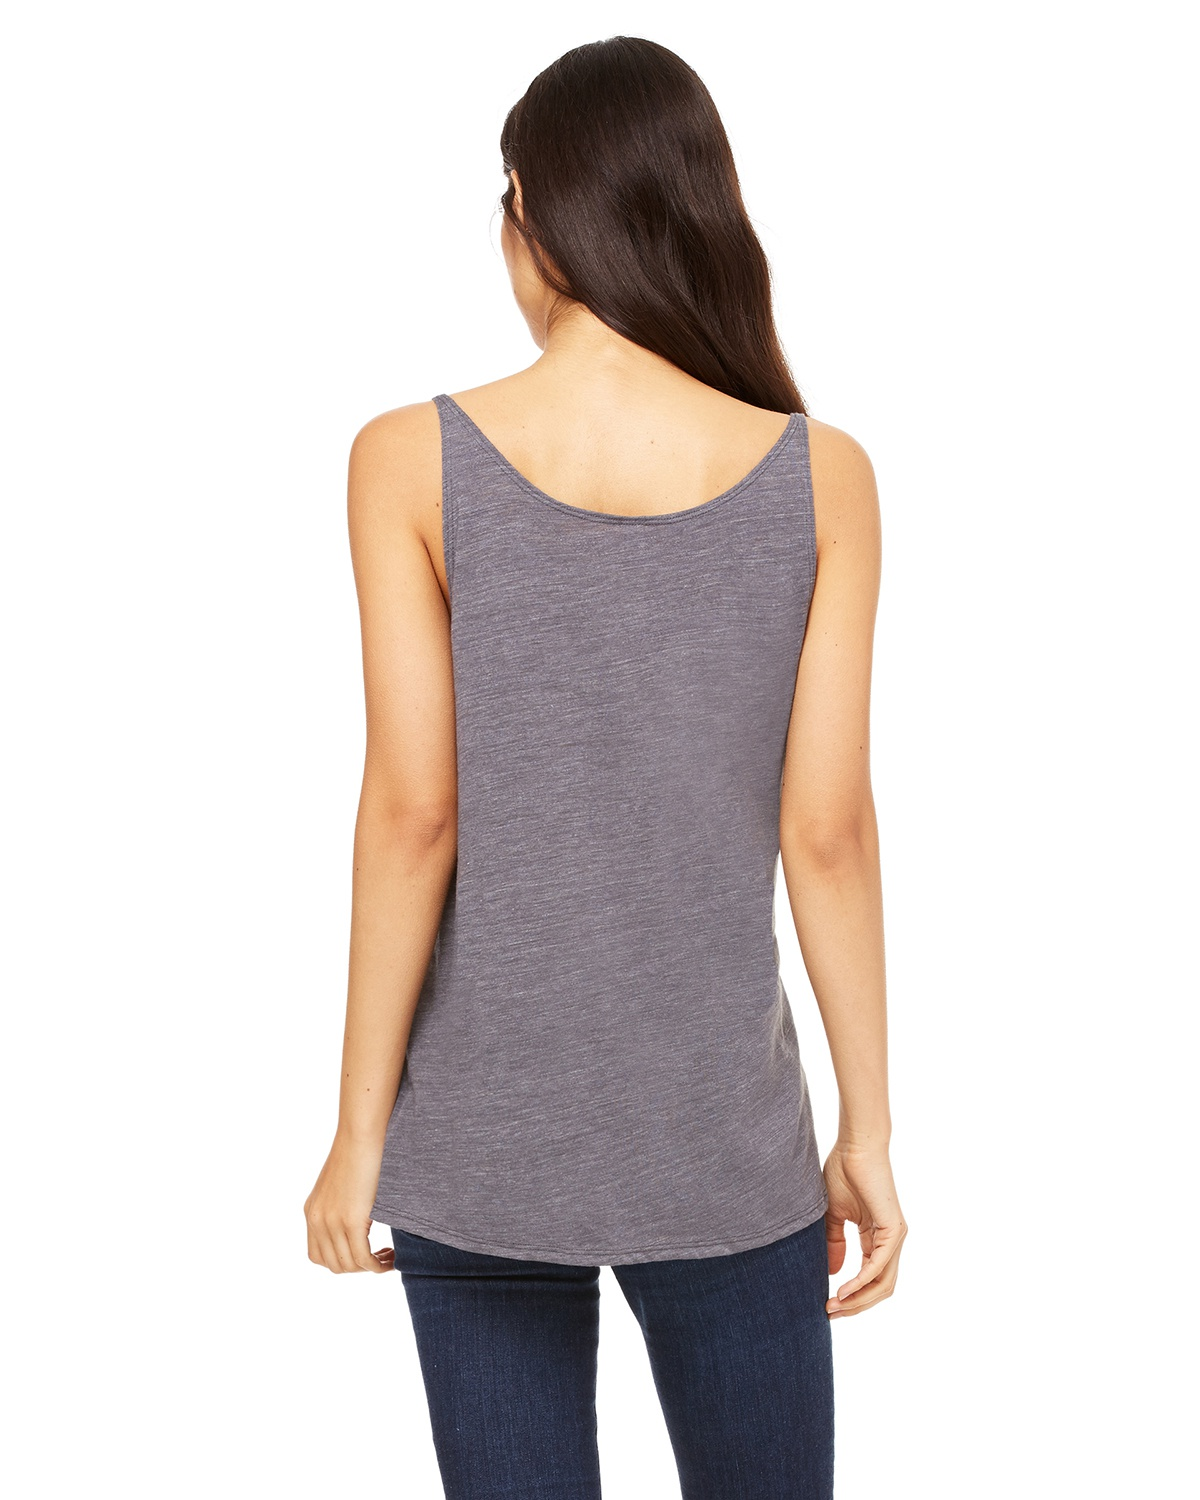 'Bella Canvas 8838 Ladies' Slouchy Tank'